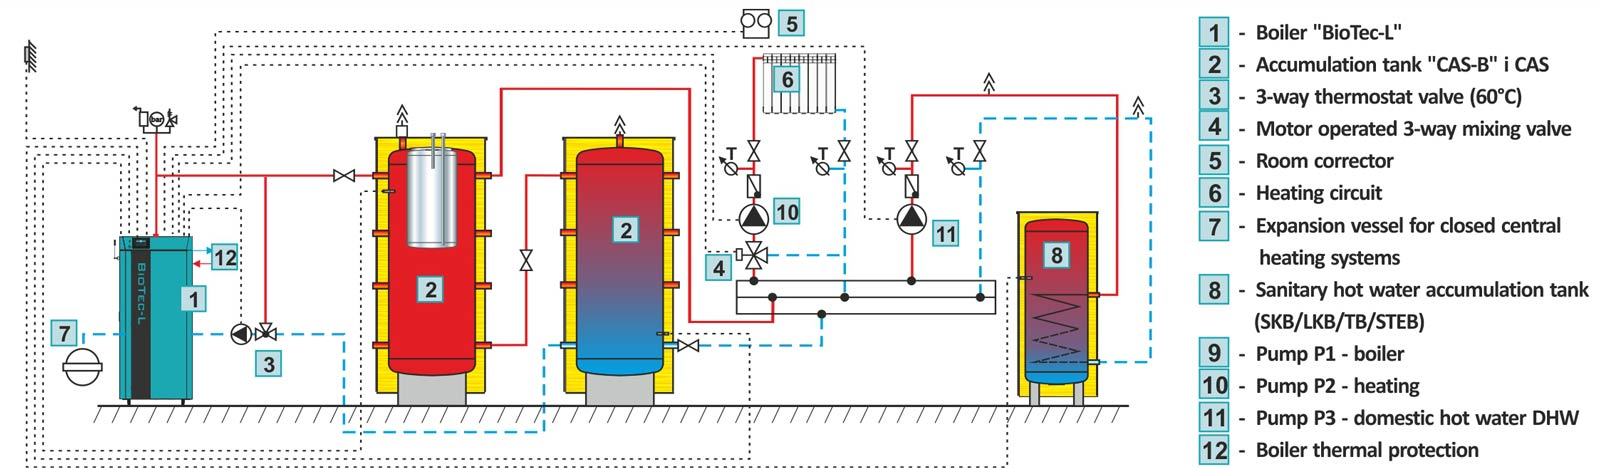 Attractive Central Heating Schematic Gift - Wiring Diagram Ideas ...